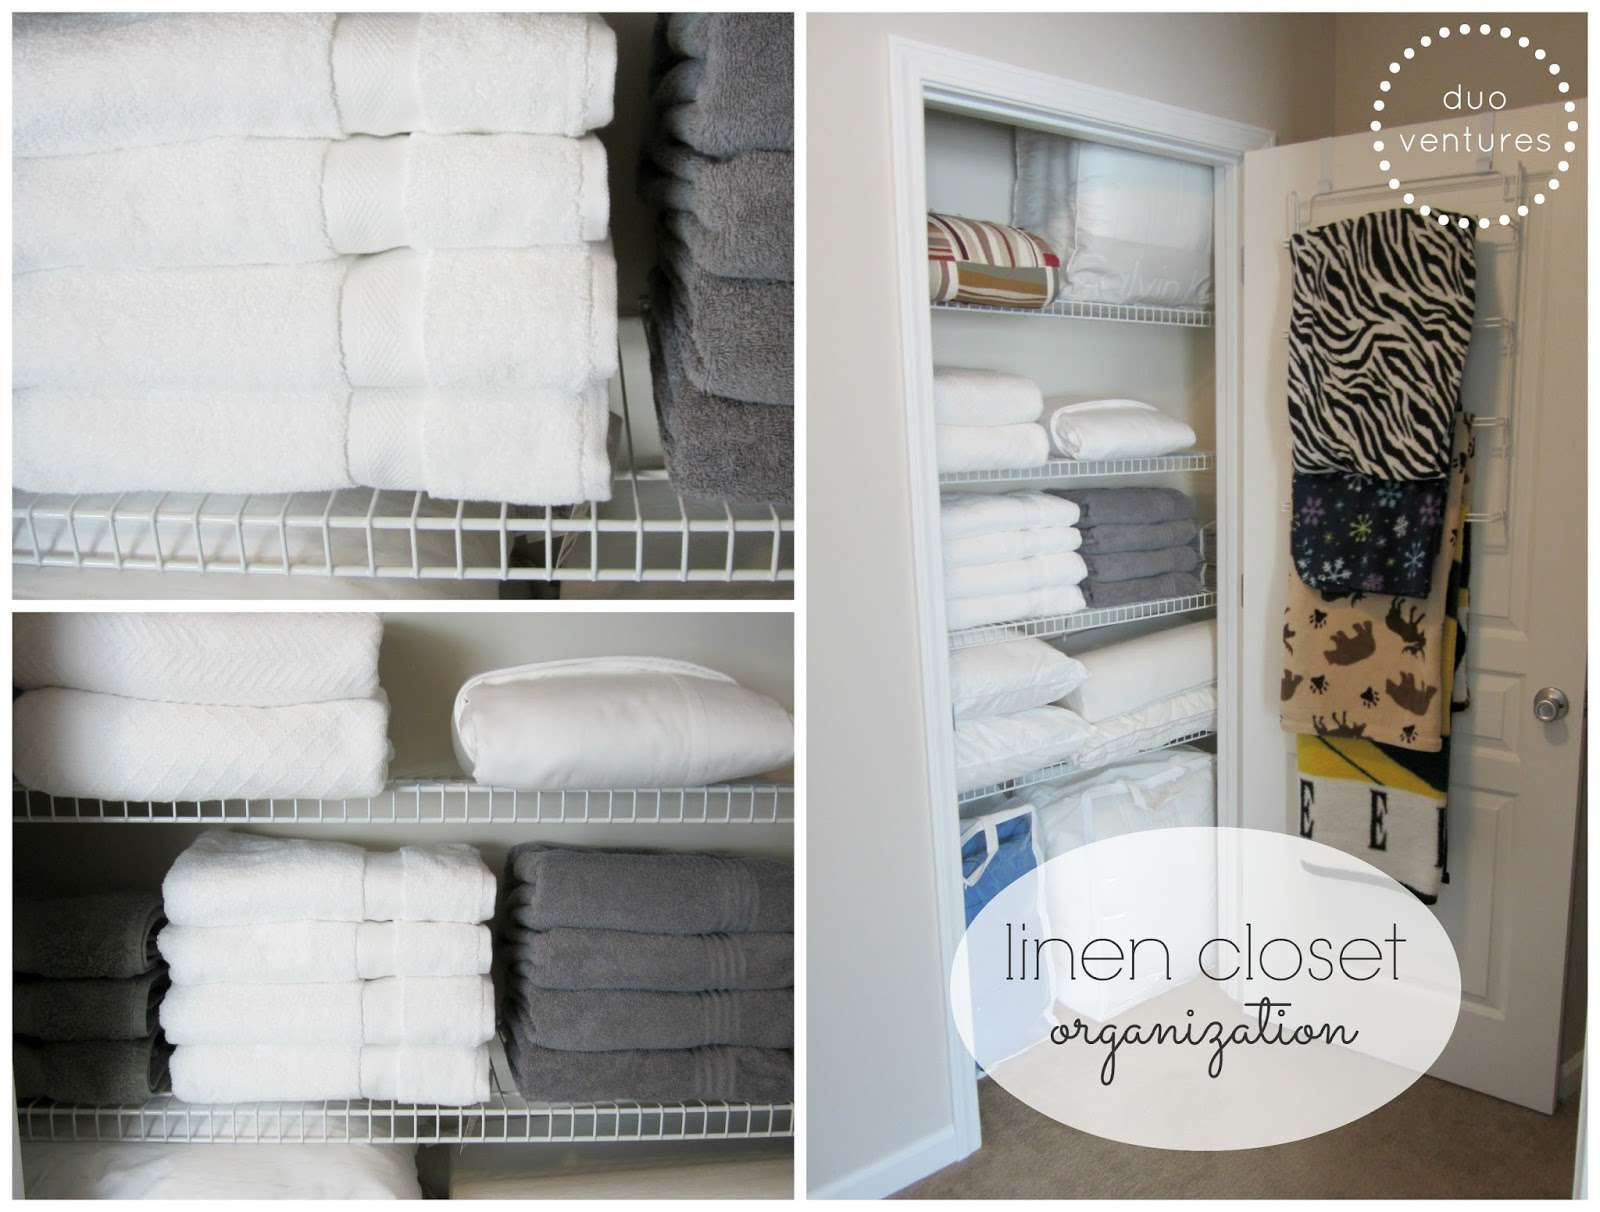 linen ideas and storage the small organization bathroom organizers white closet space